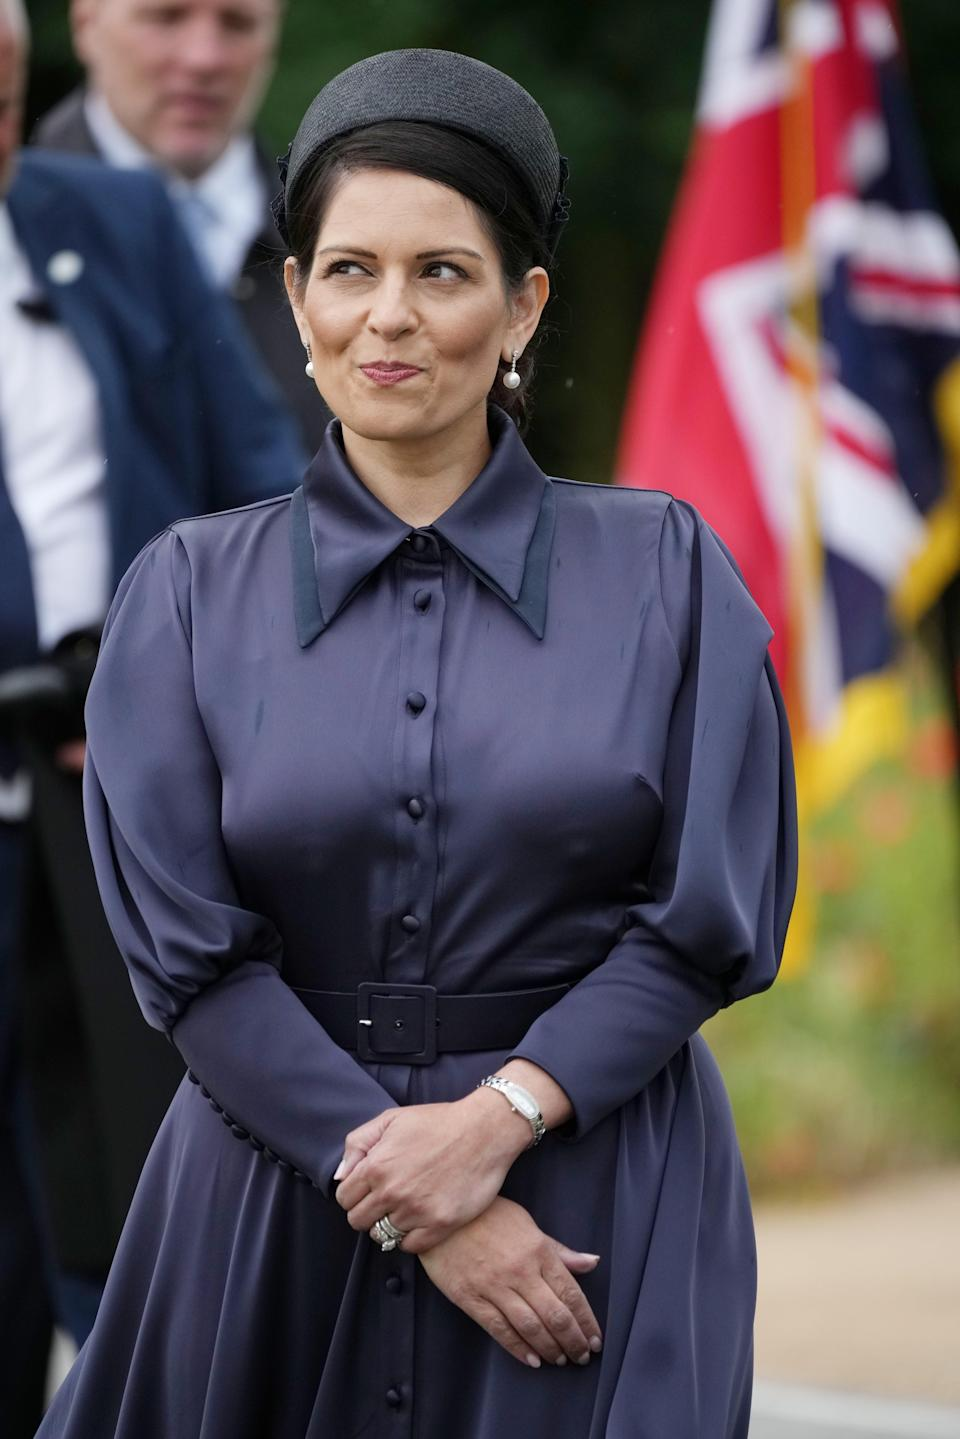 Home Secretary, Priti Patel, attending the unveiling of the UK Police Memorial at the National Memorial Arboretum at Alrewas, Staffordshire (Christopher Furlong/PA) (PA Wire)